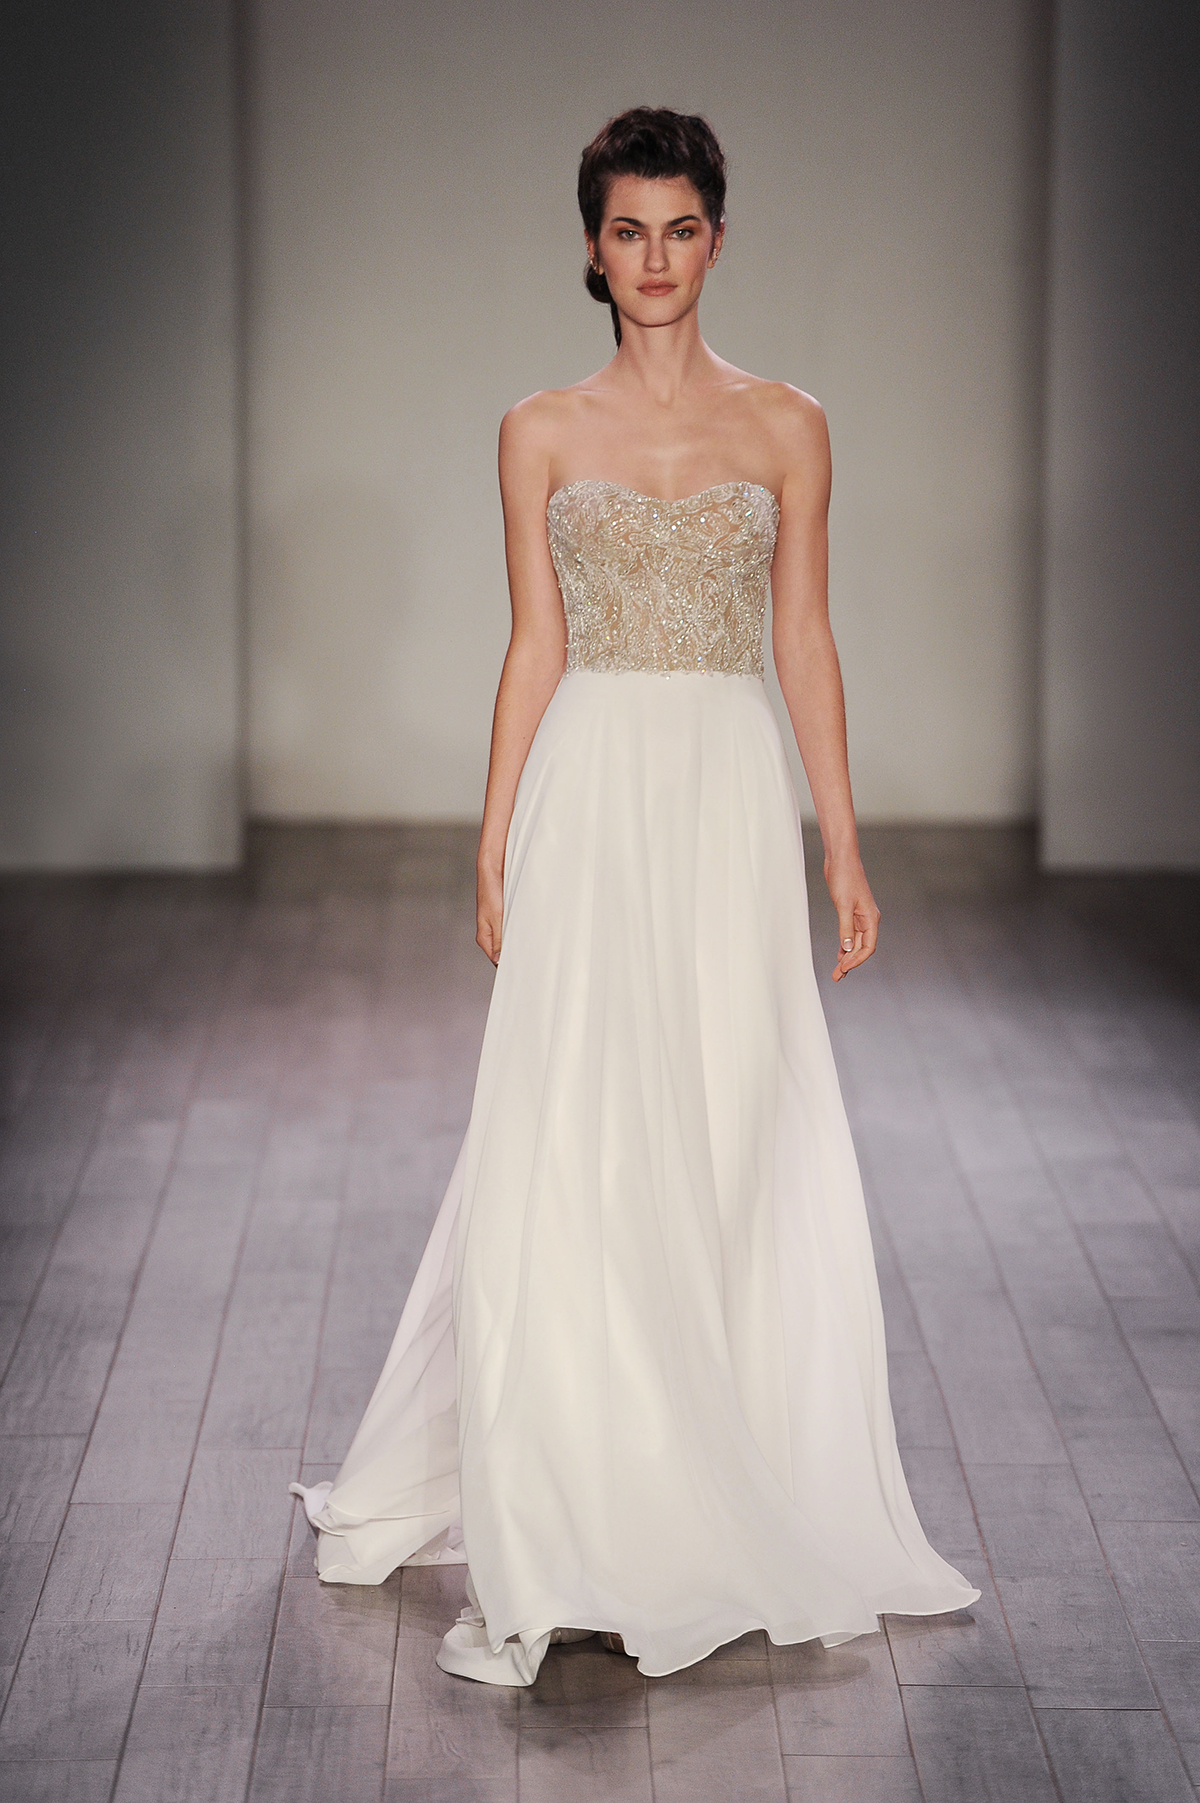 Bridal Gowns and Wedding Dresses by JLM Couture Style 8612